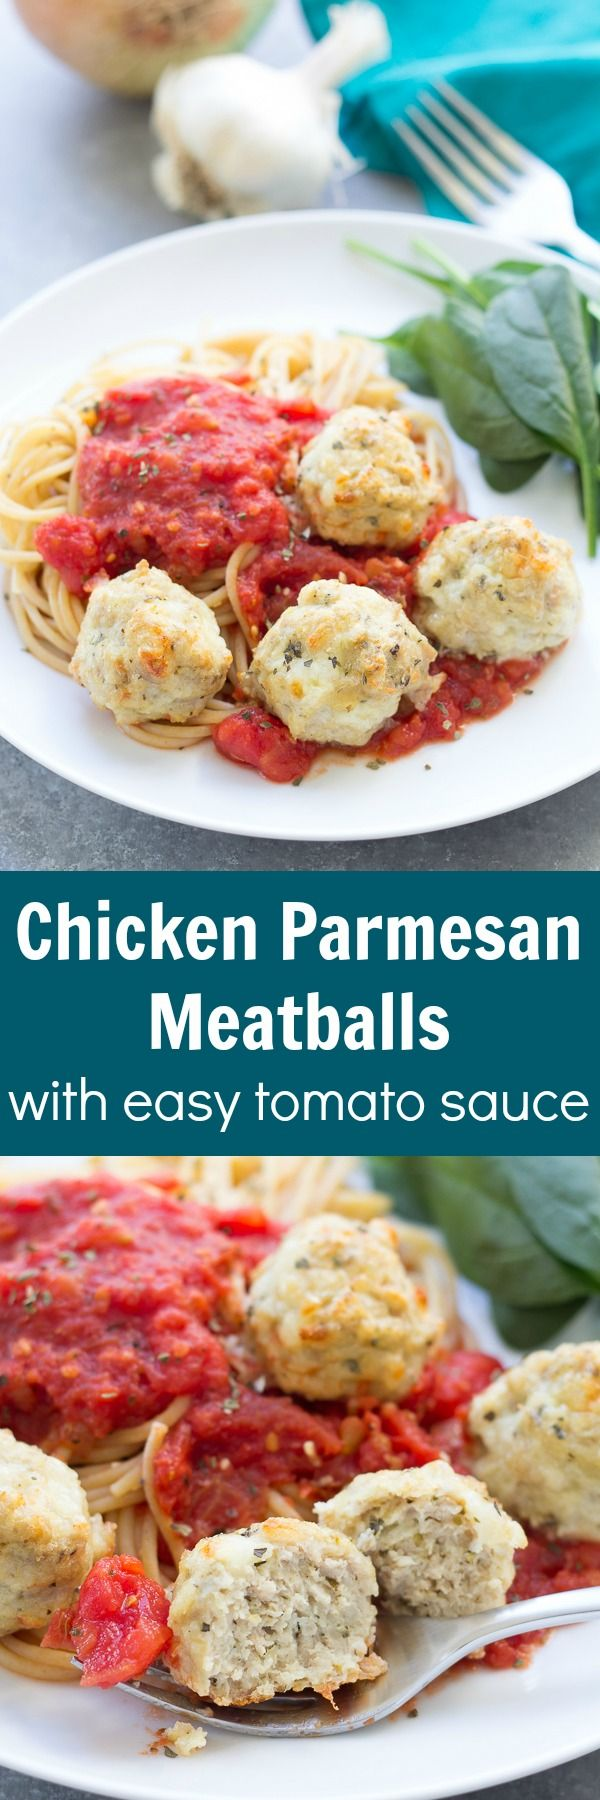 25+ best ideas about Chicken parmesan meatballs on ...